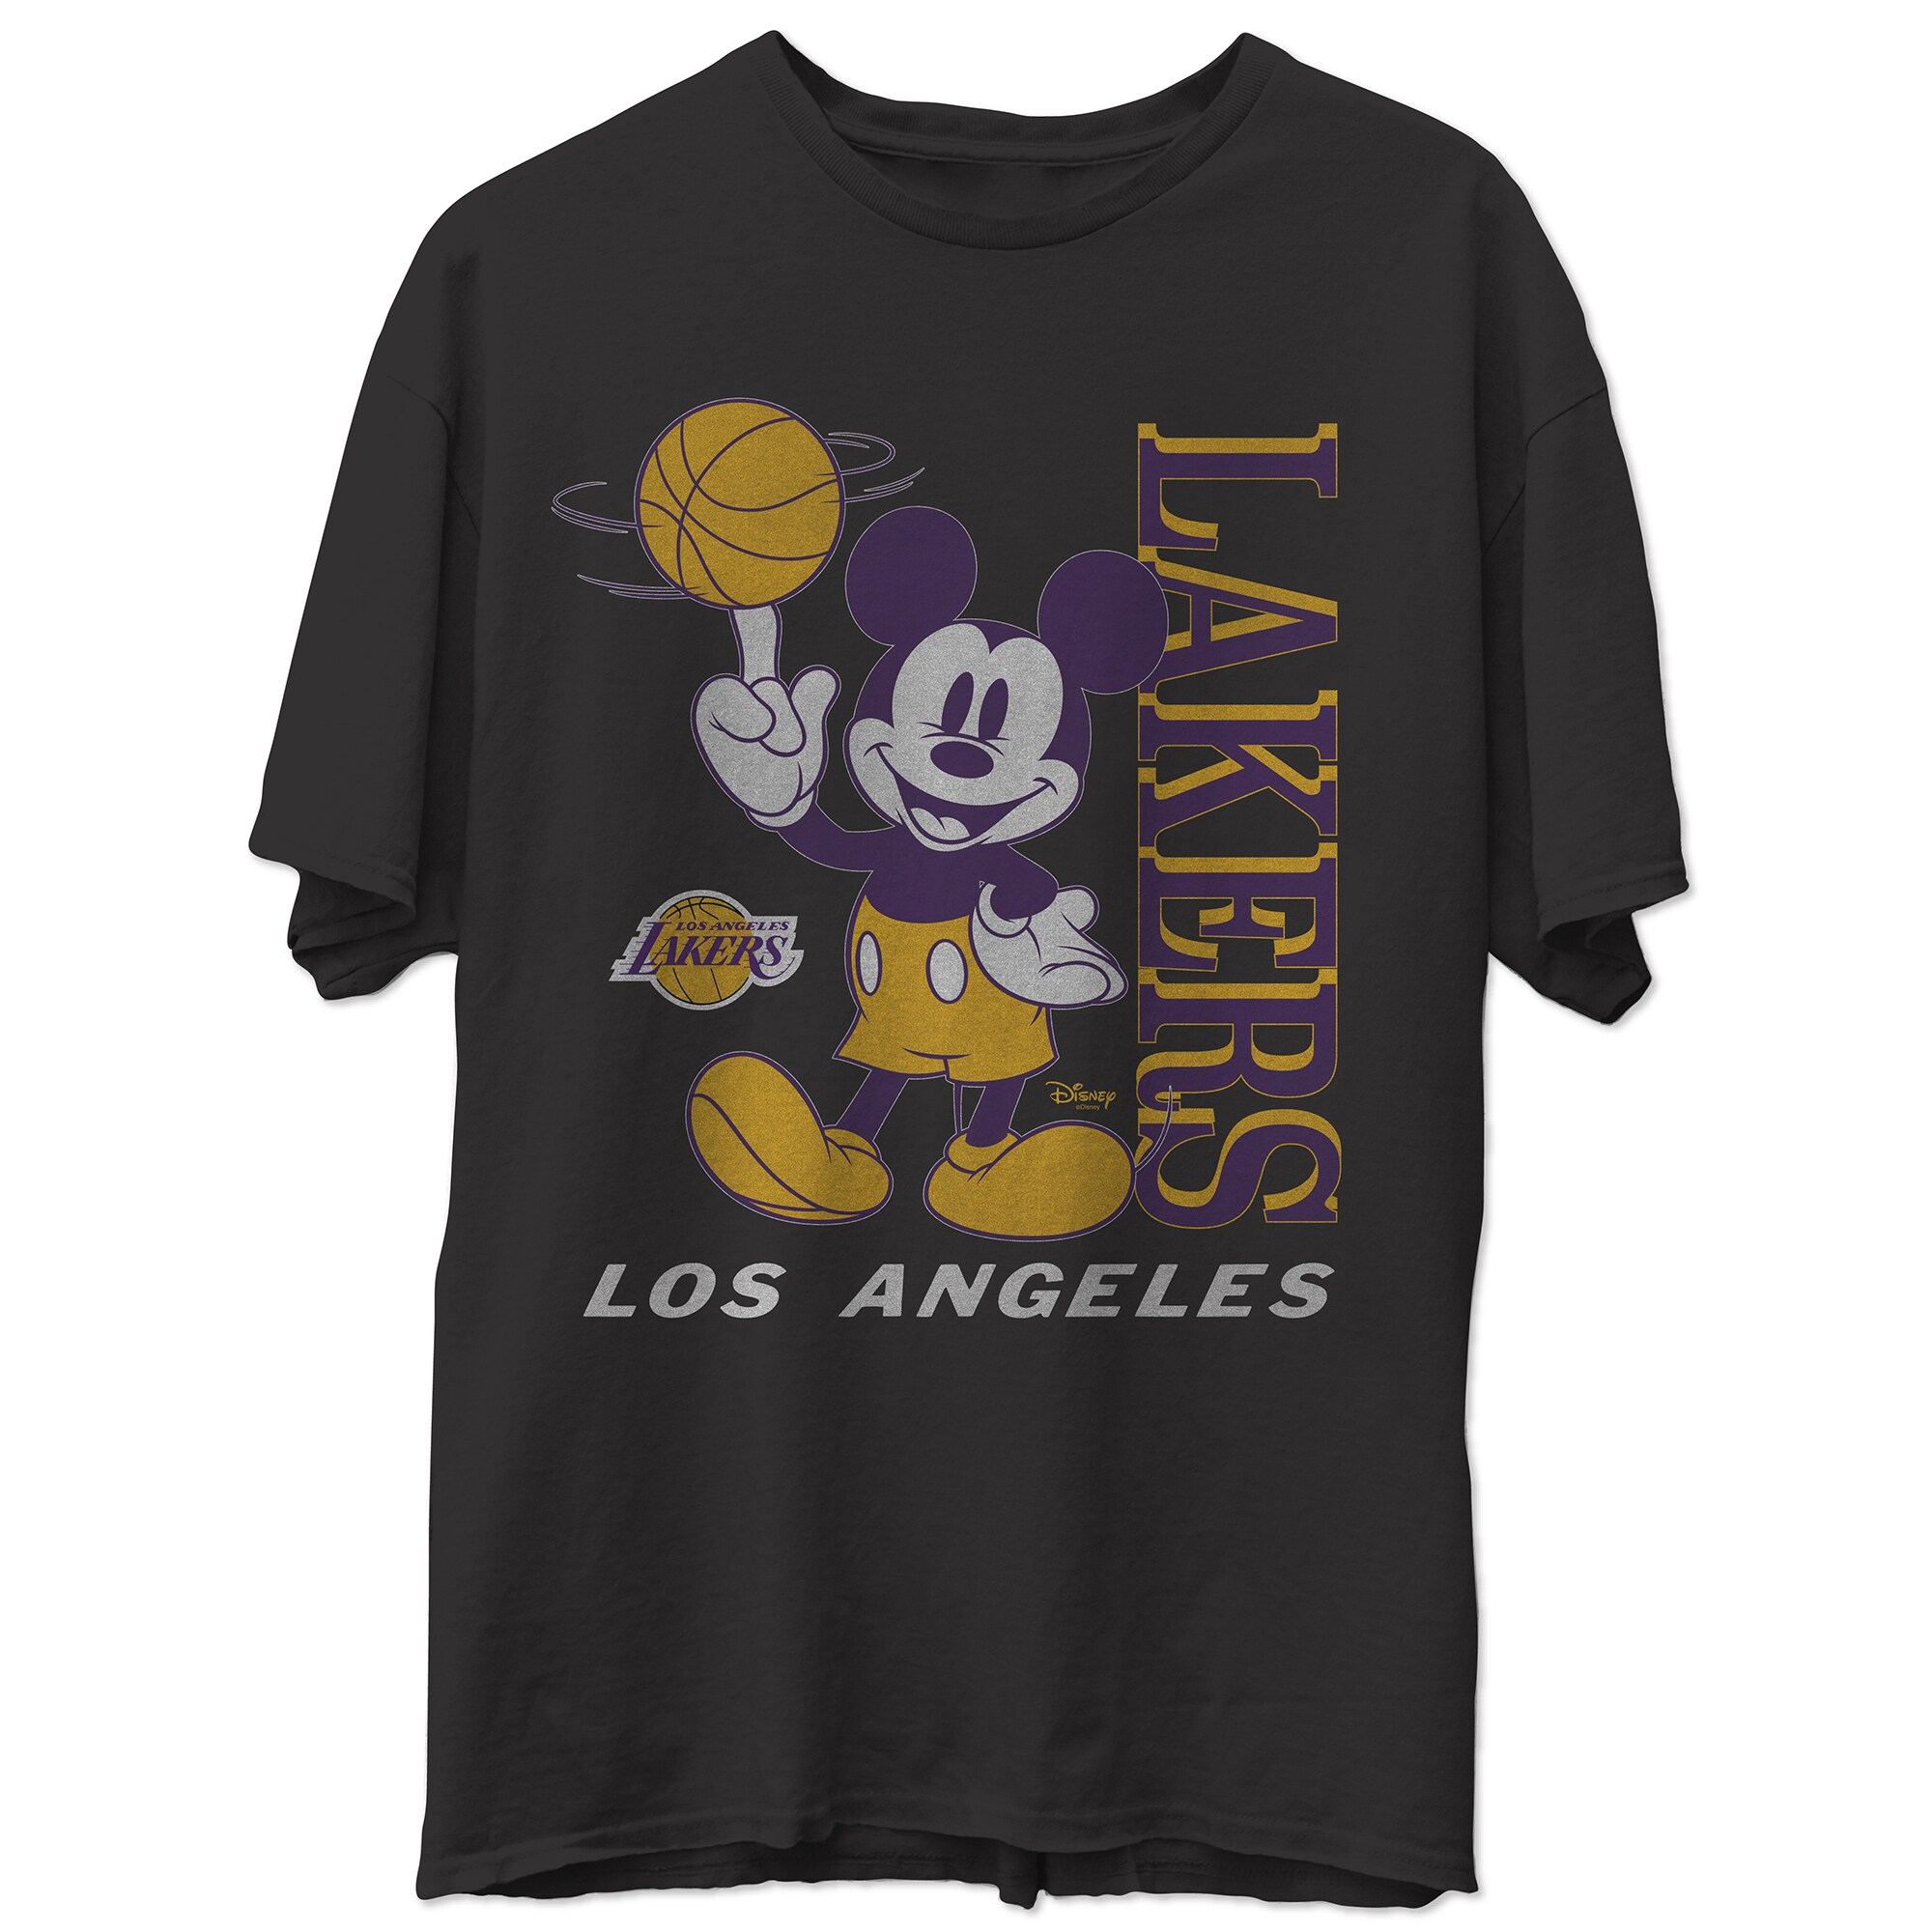 Los Angeles Lakers Junk Food Disney Vintage Mickey Baller T-Shirt - Black